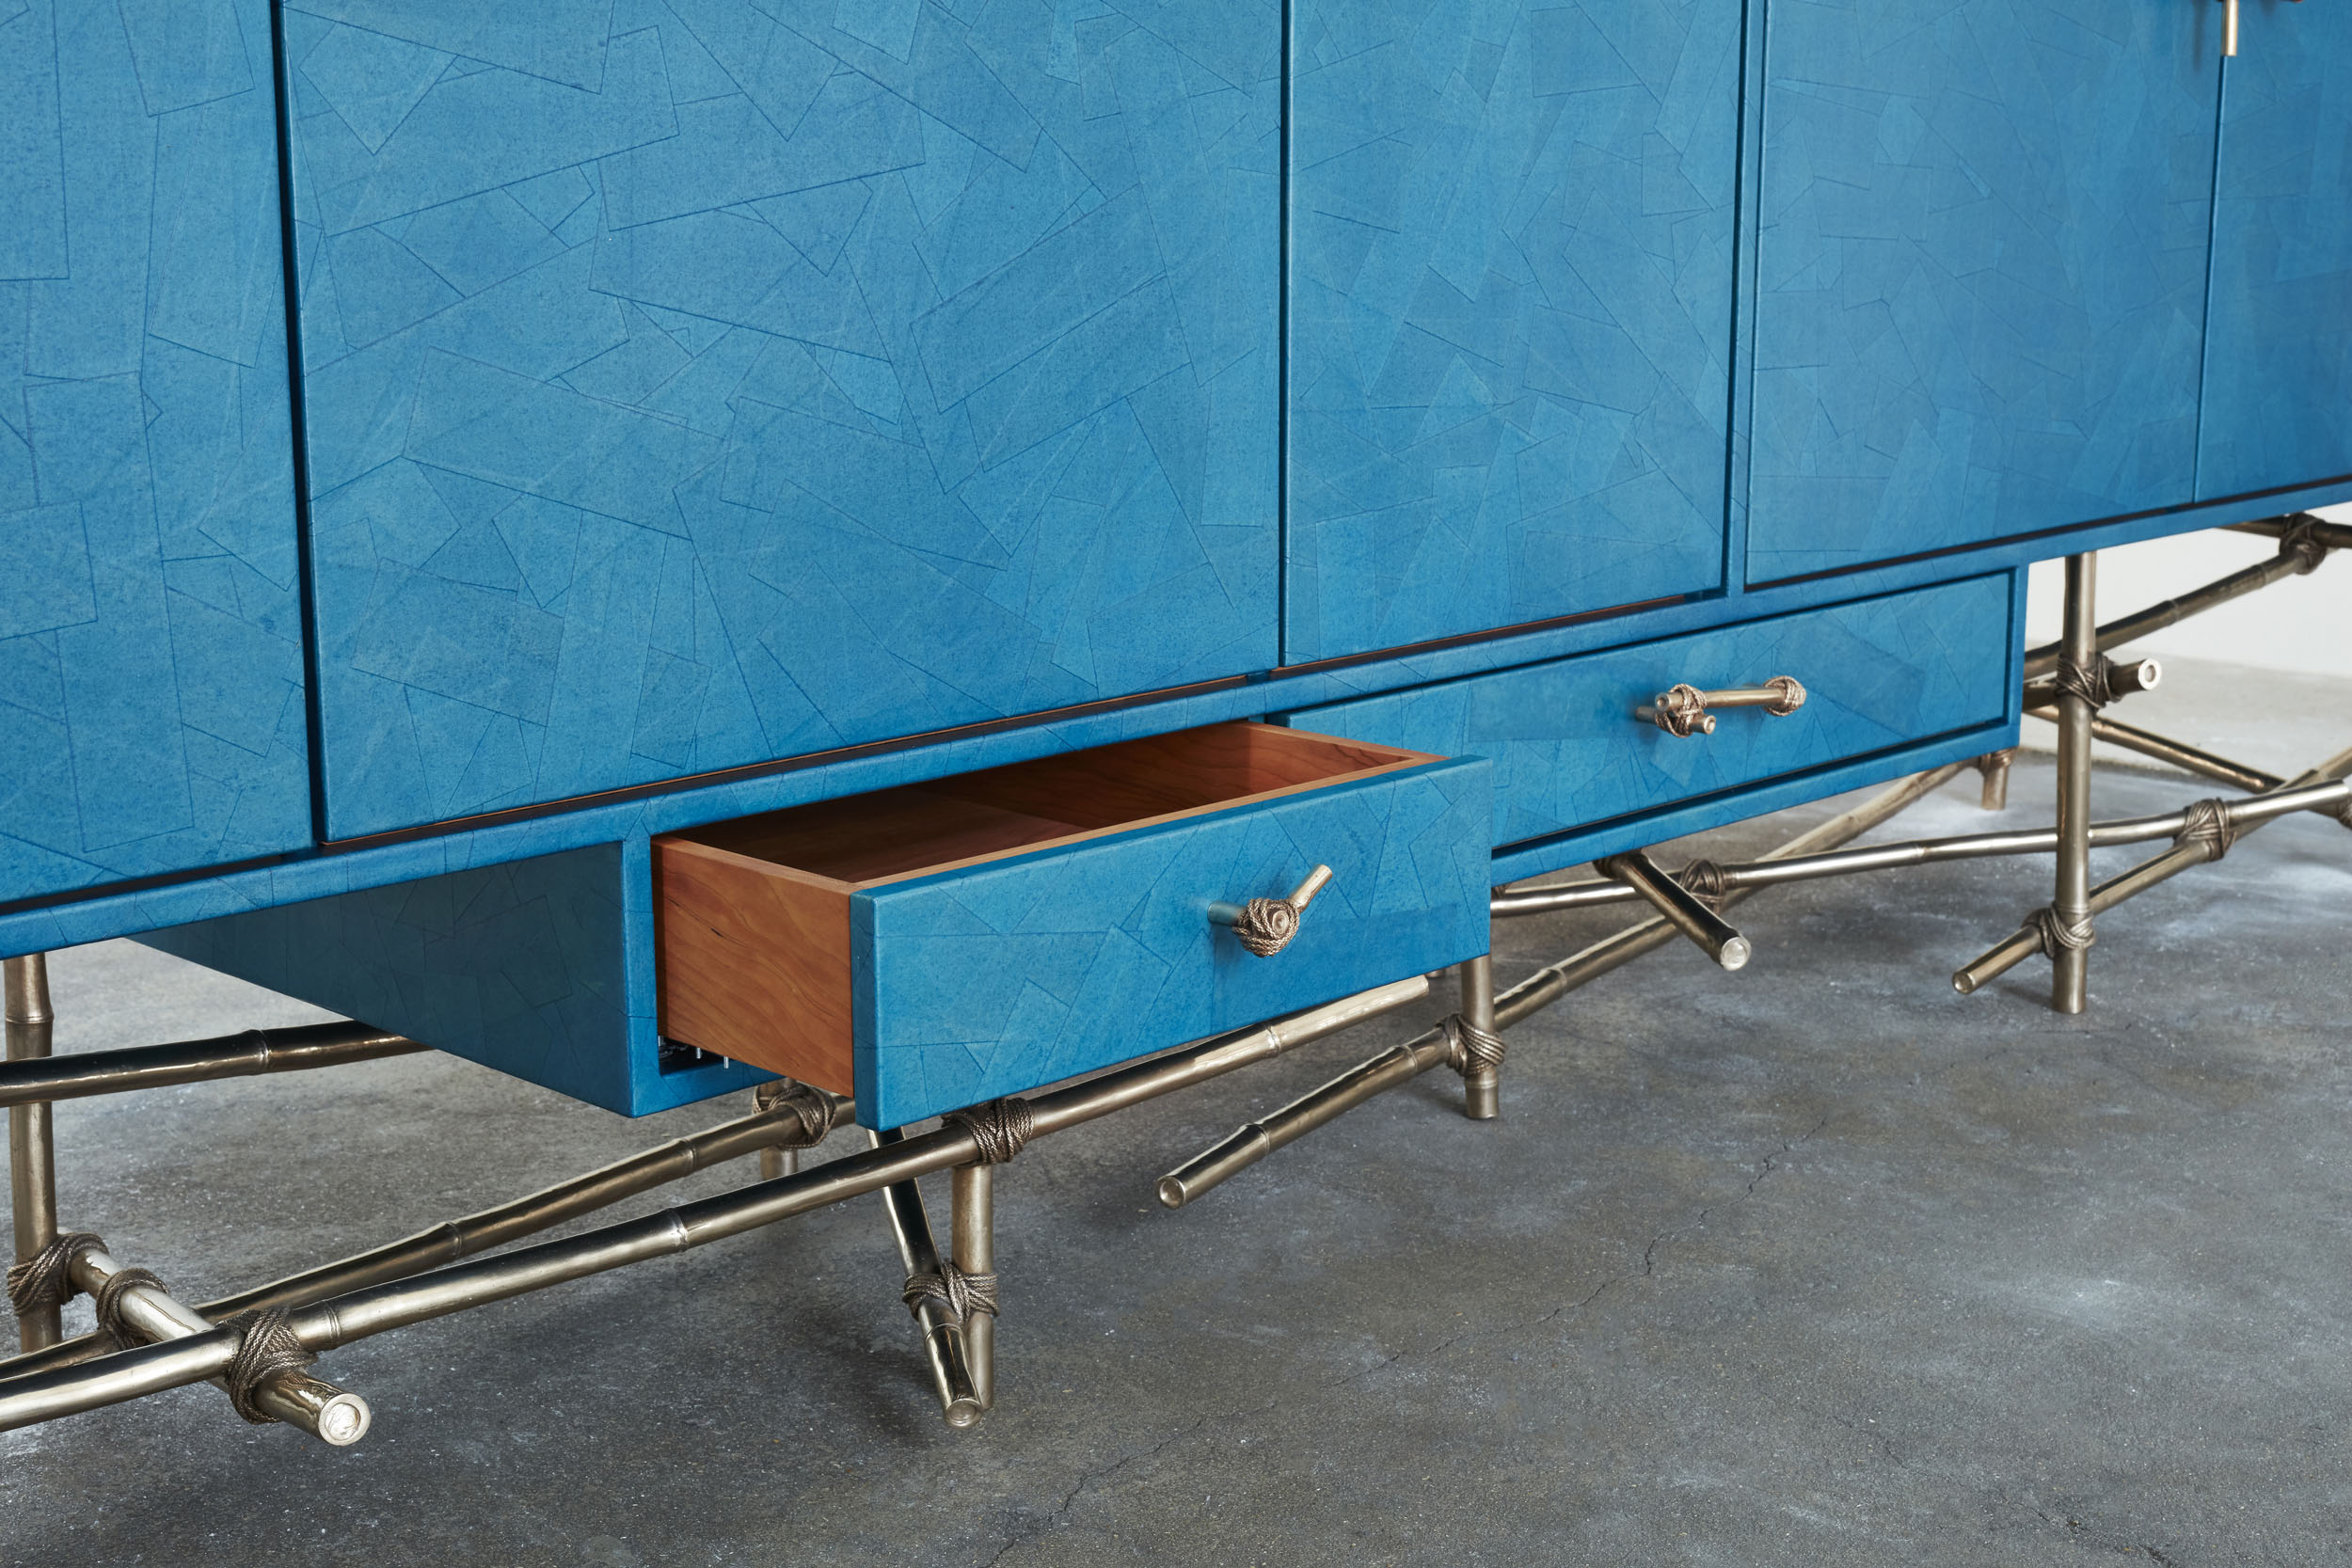 A drawer detail of large sideboard showing turquoise gum paper finish